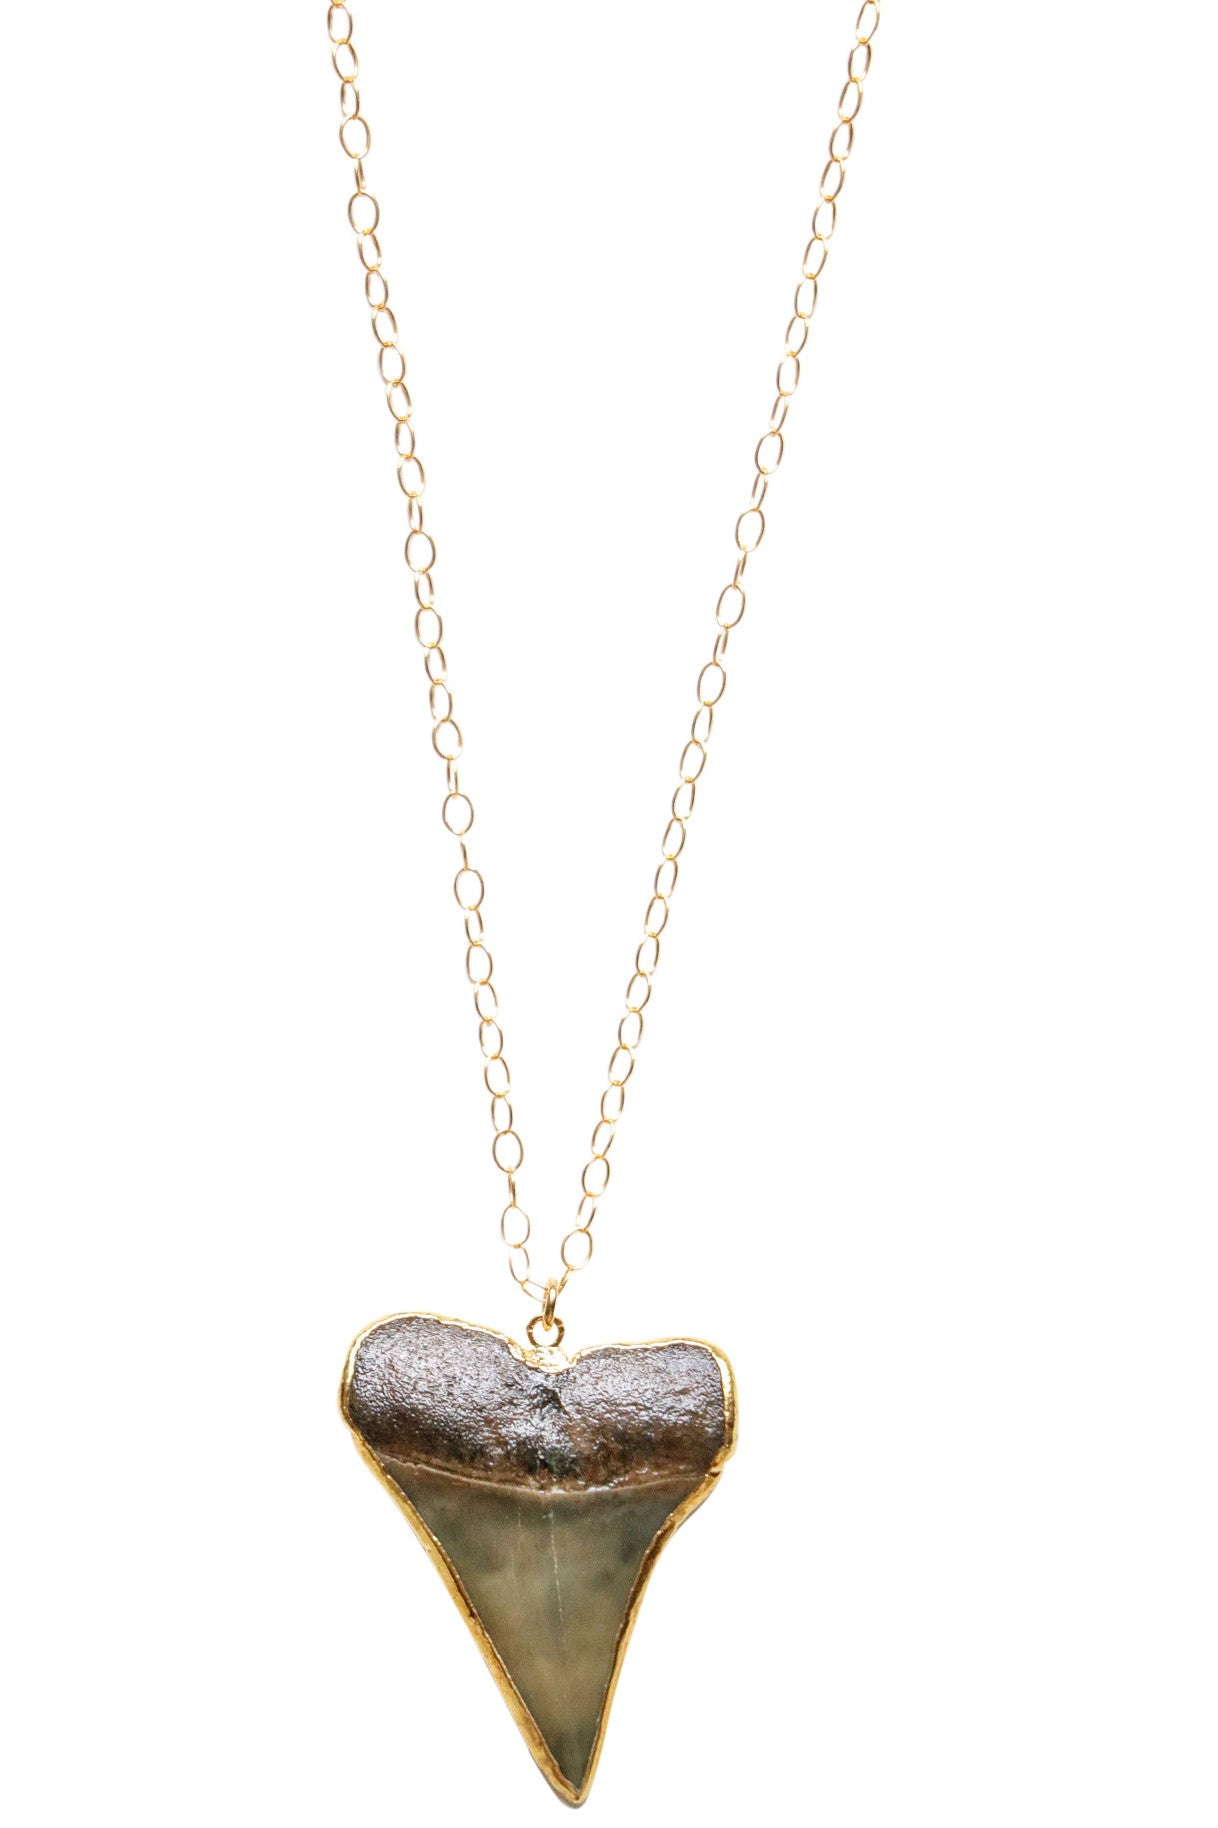 Sharks Tooth necklace with Dark Black Mako Shark's Tooth in 24k Gold on 14k Gold Filled petite chain